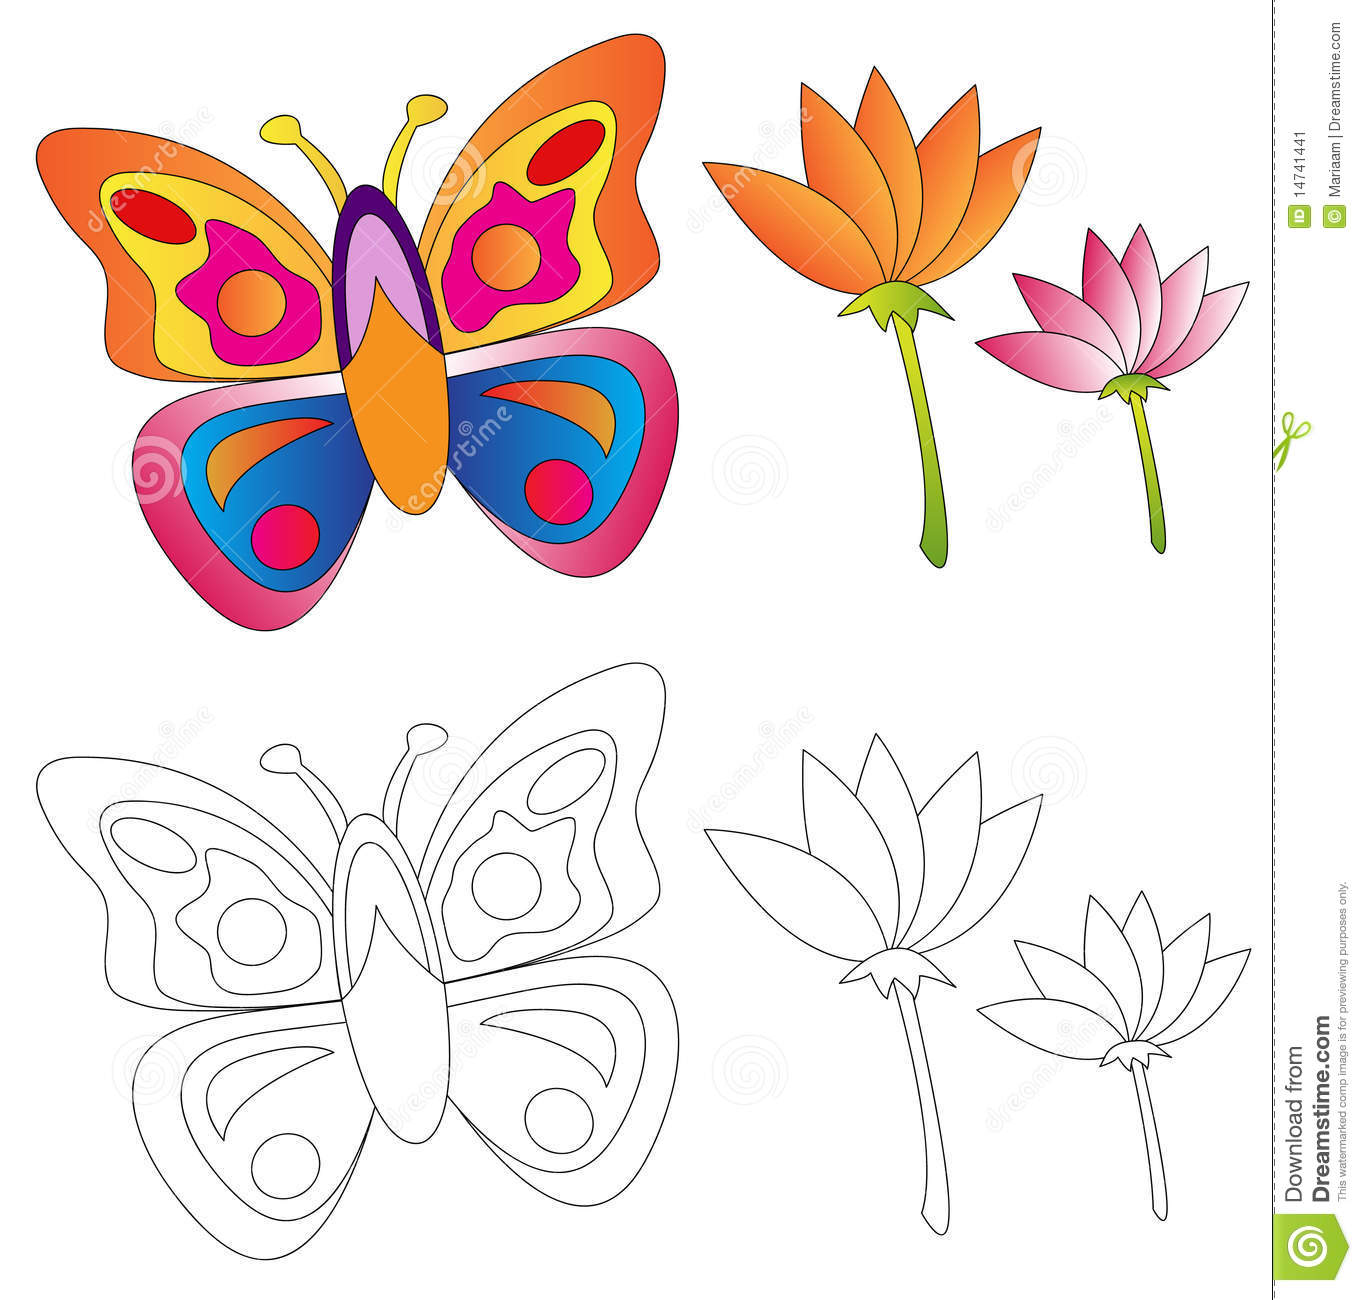 Coloring Book Sketch: Flower Stock Image - Image: 16817631